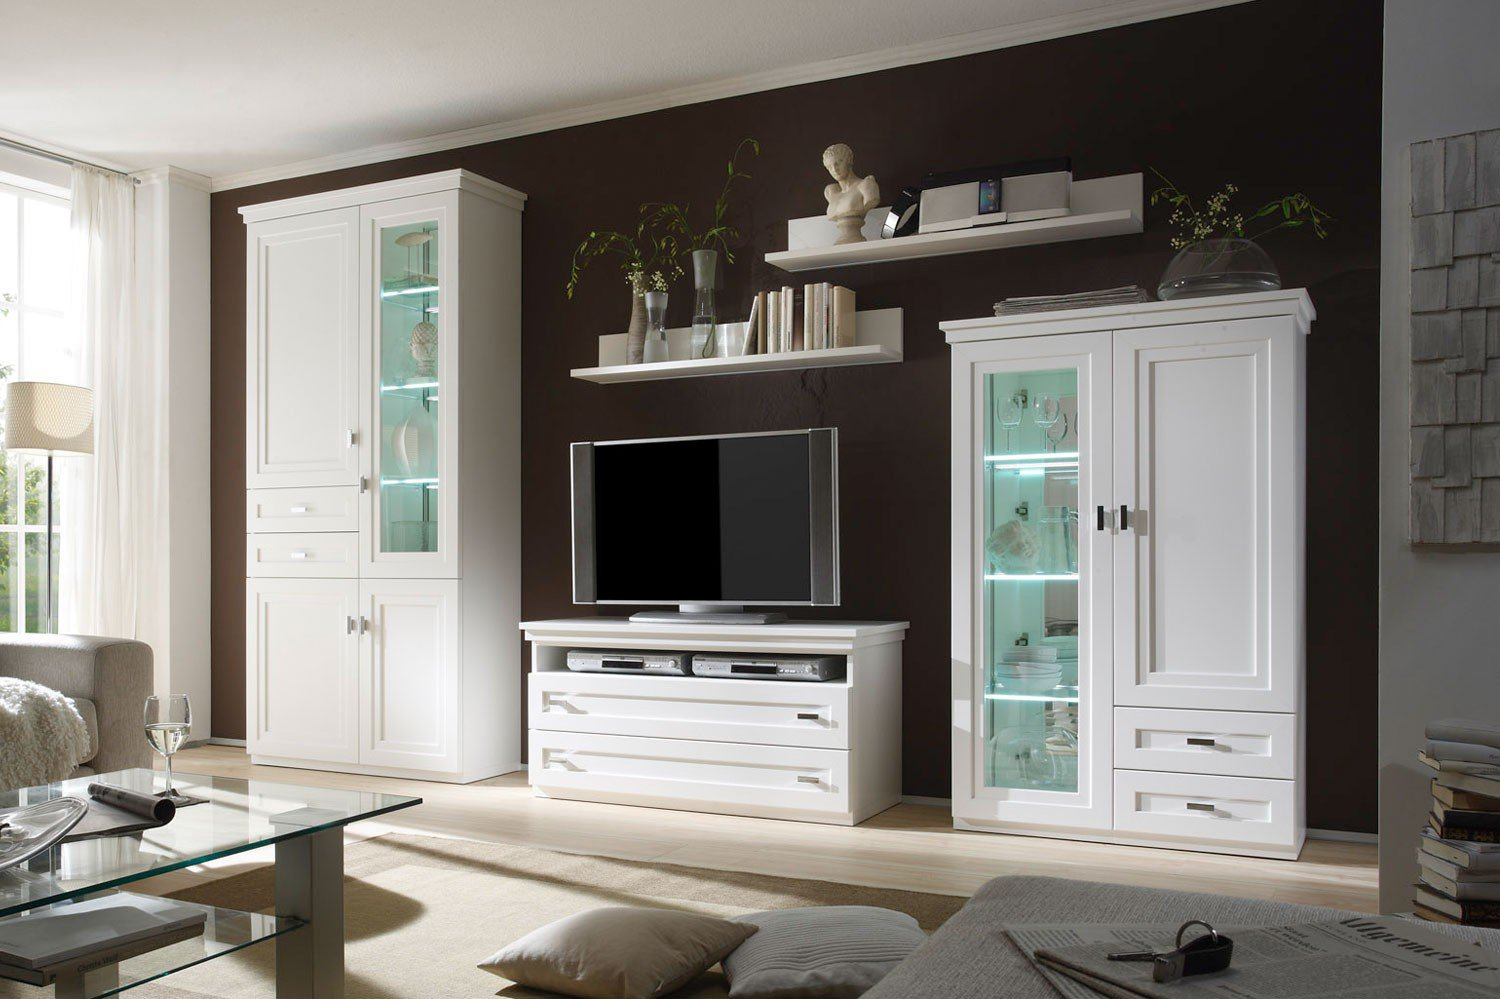 wehrsdorfer wohnwand kent ph 661 lack wei m bel letz ihr online shop. Black Bedroom Furniture Sets. Home Design Ideas